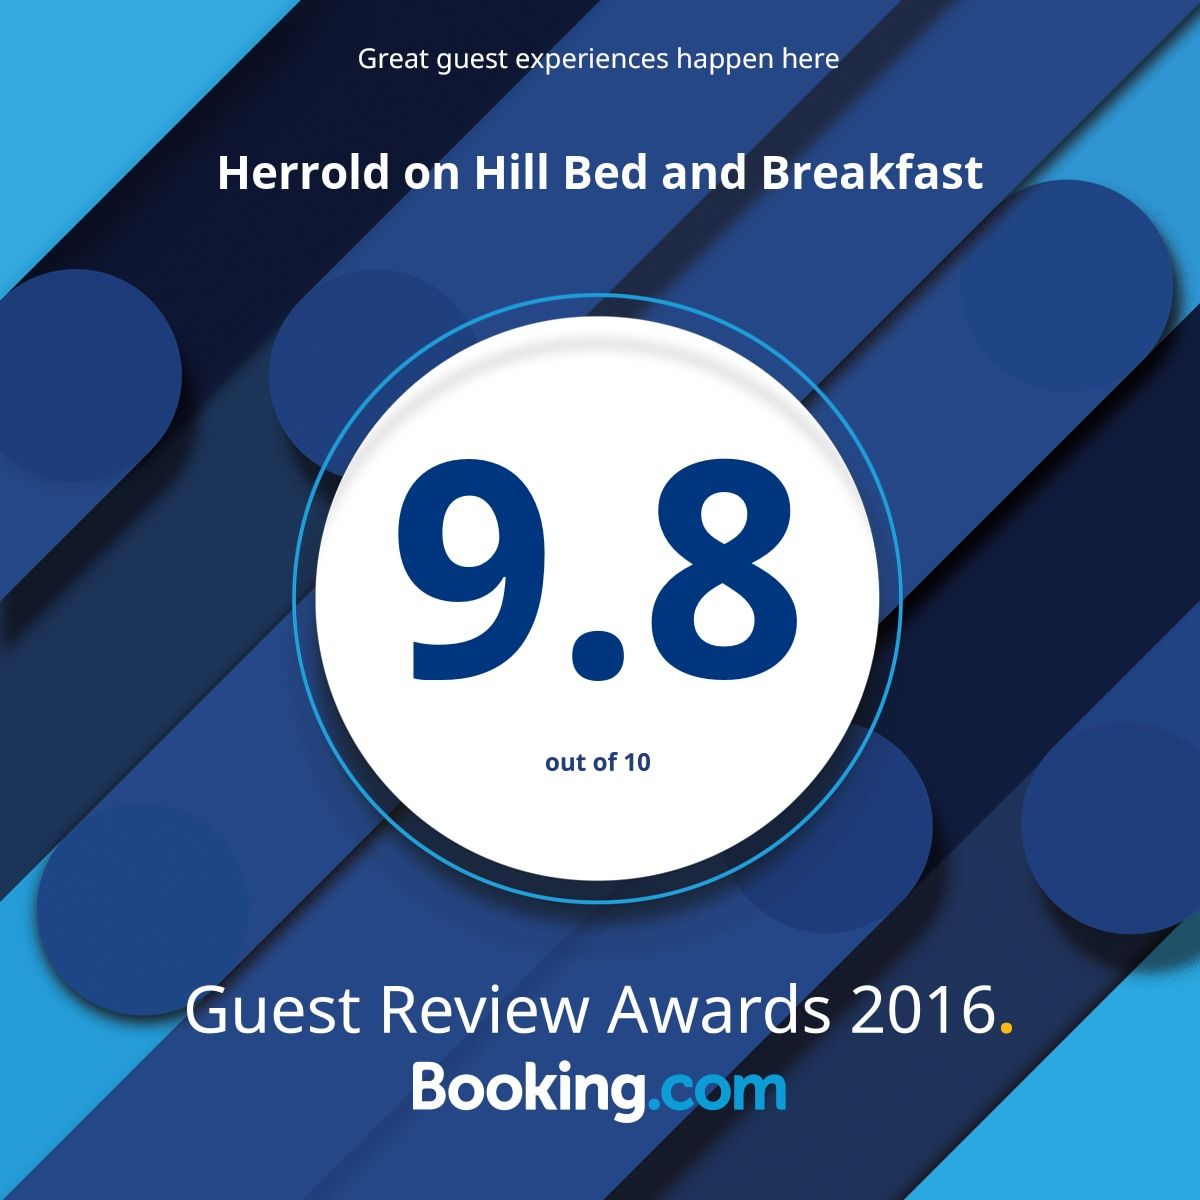 Booking.com 2016 Guest Review award.jpg